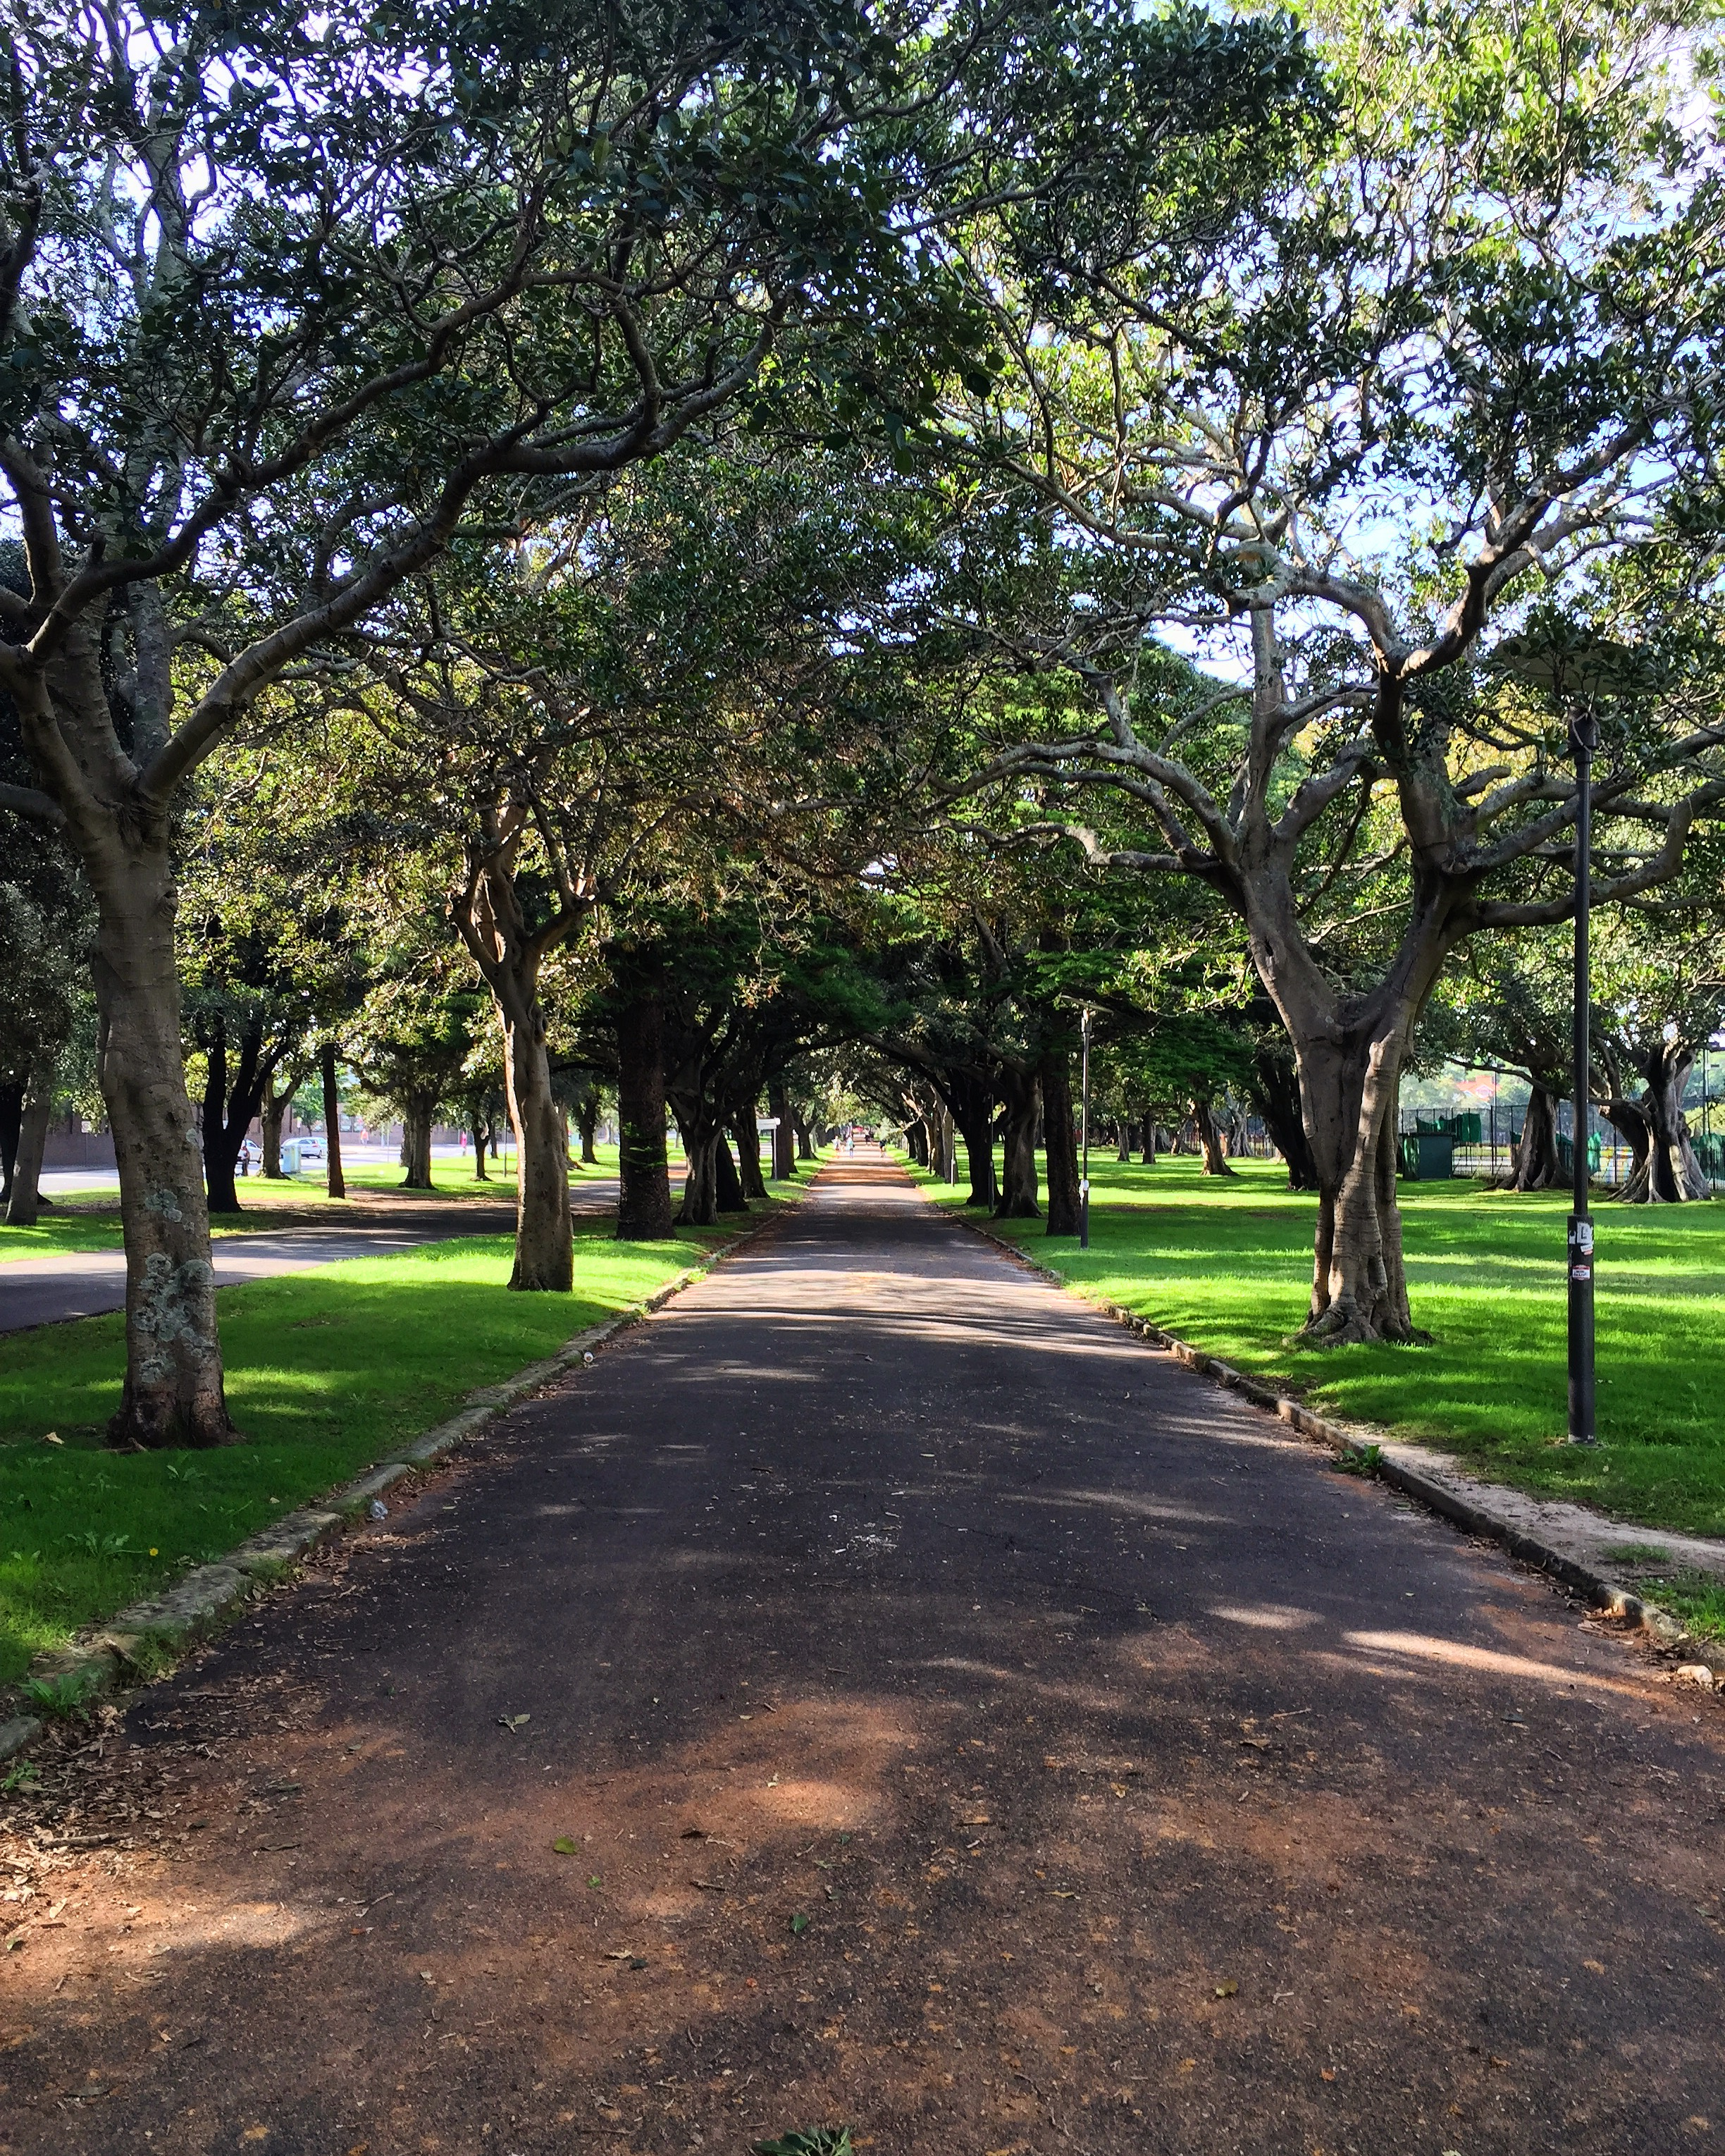 Federation Way, Centennial Park